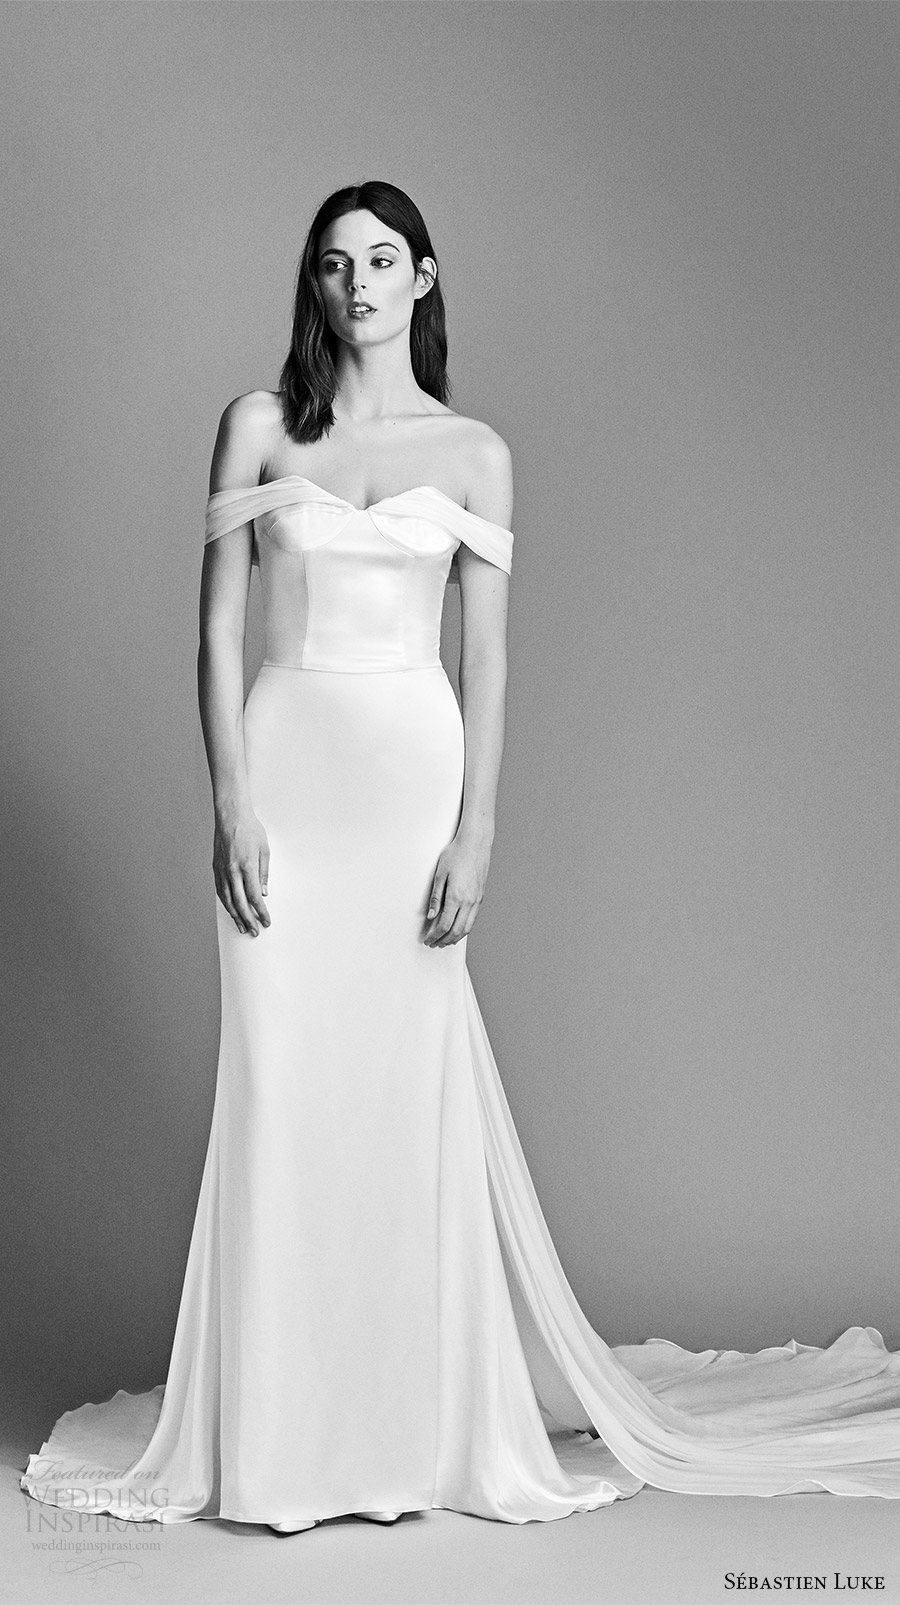 sebastien luke spring 2018 bridal off shoulder draped sleeves clean sheath wedding dress (18b11) mv low long train chic modern